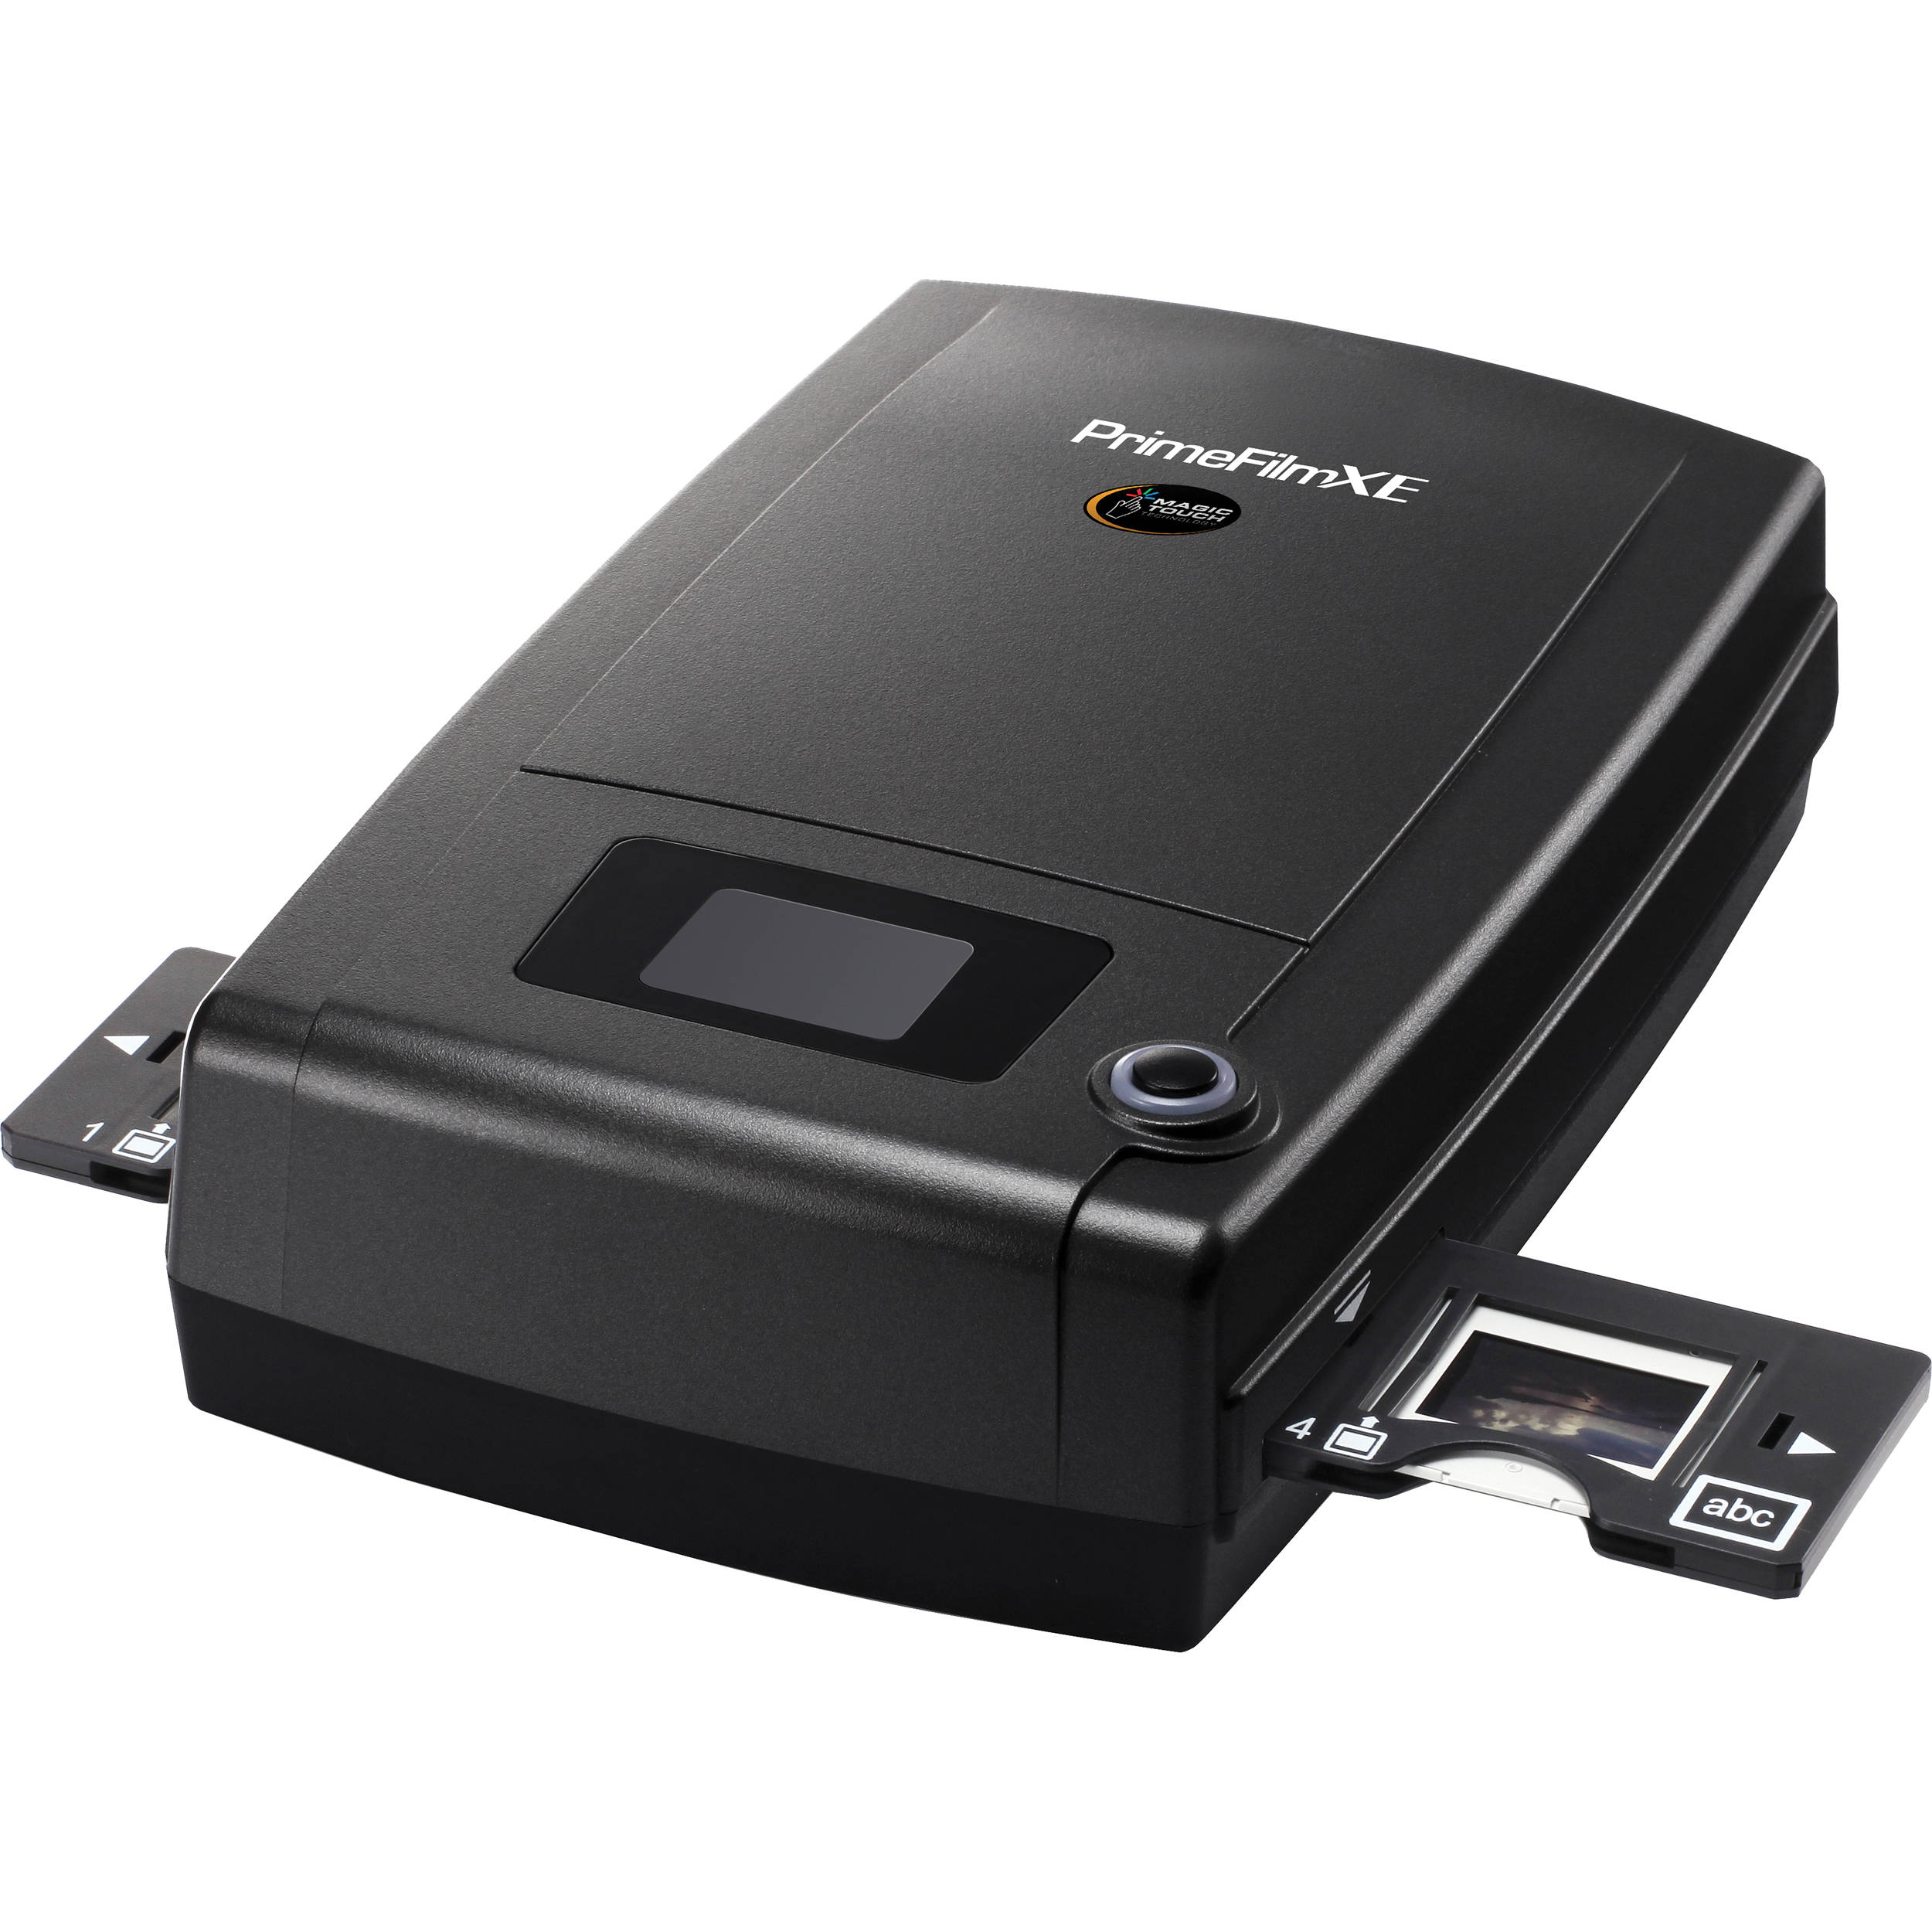 Pacific Image PrimeFilm XE 35mm Film & Slide Scanner - One-touch scan button, 3-line RGB linear CCD sensor, 10,000 x 10,000 dpi, 48-bit